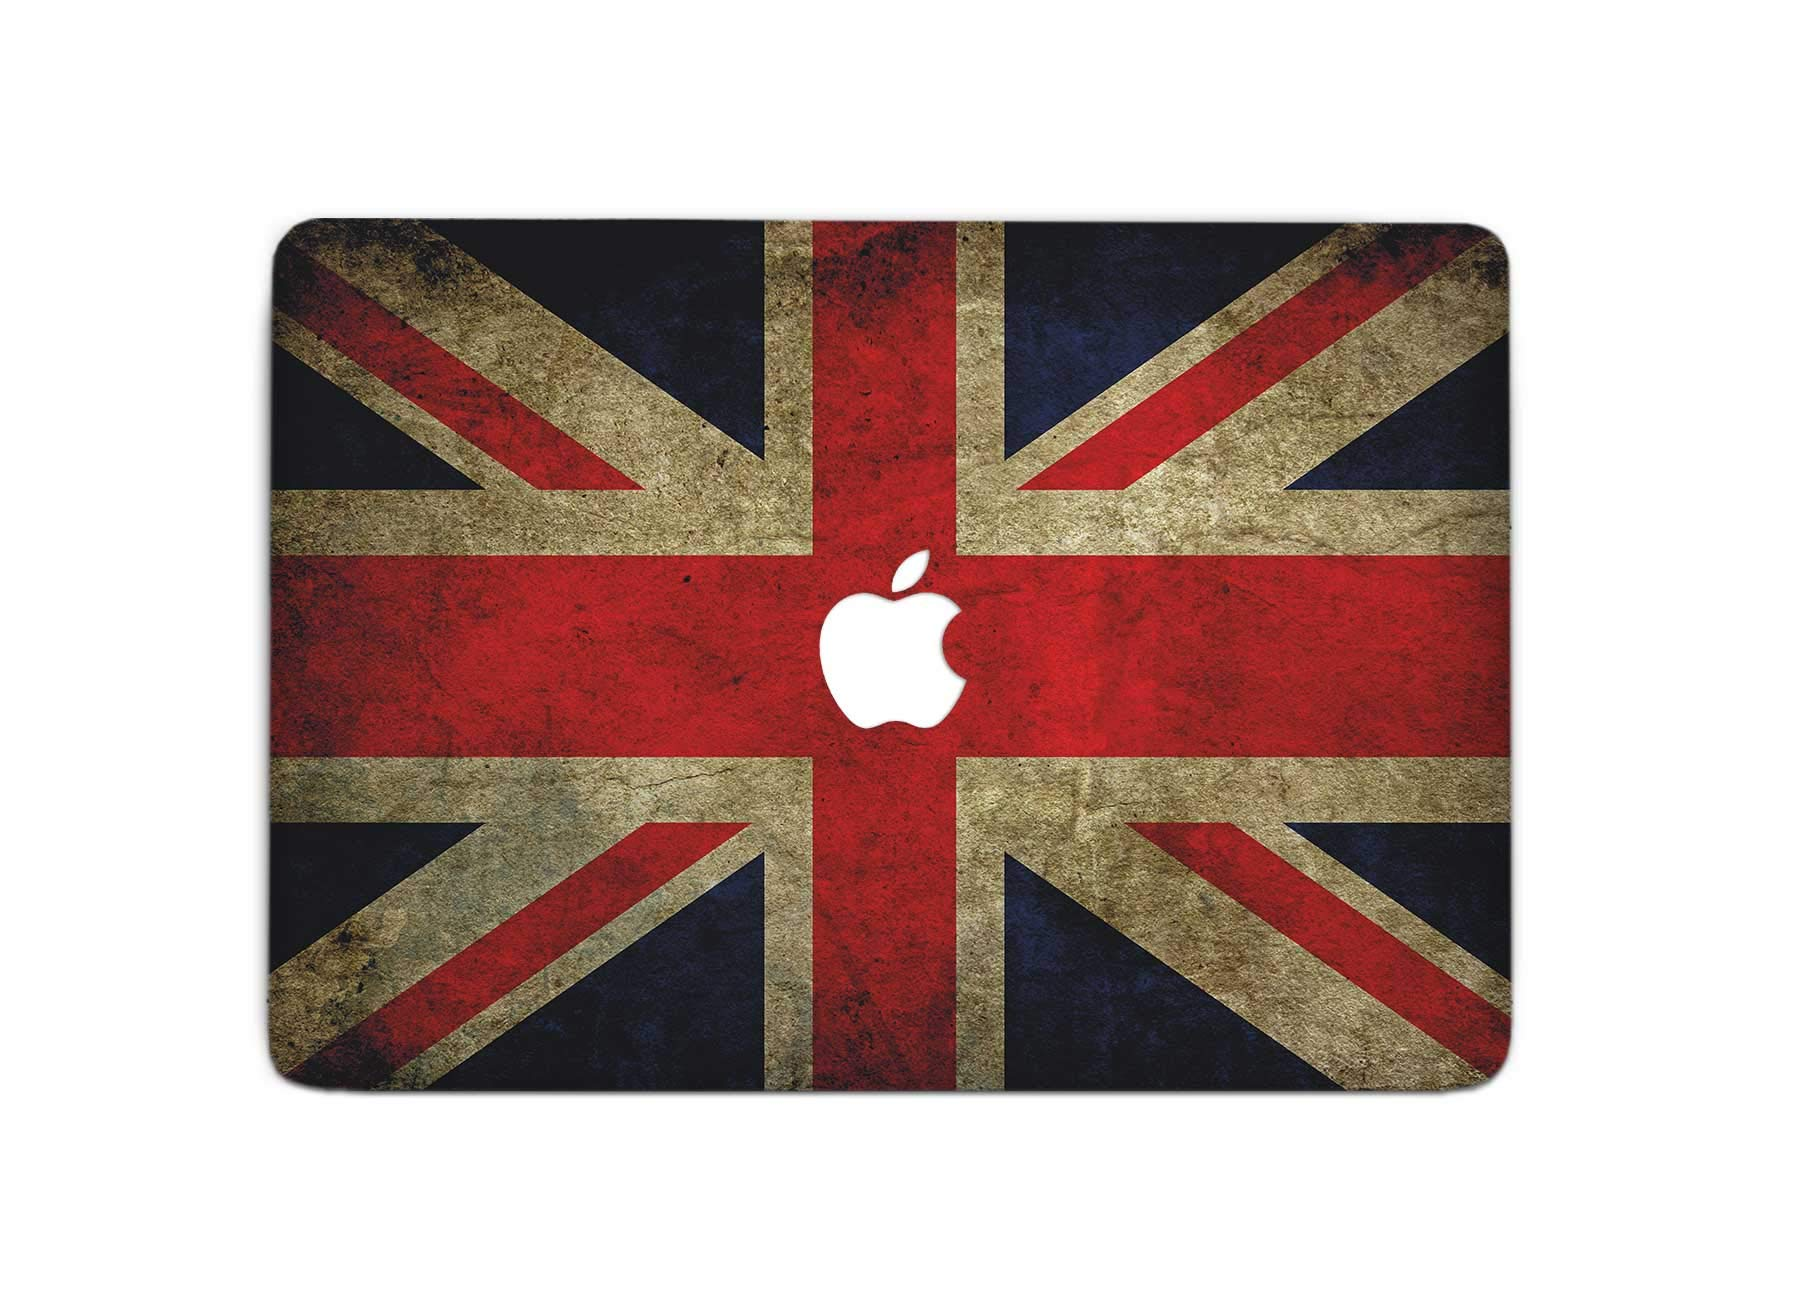 ZizzStore British National Flag MacBook Decal Laptop Skin Protective Sticker for MacBook Protective Notebook Apple Computer Gift Union Jack Vinyl Sleeve (Pro Retina 15 (A1398), T+B+A)